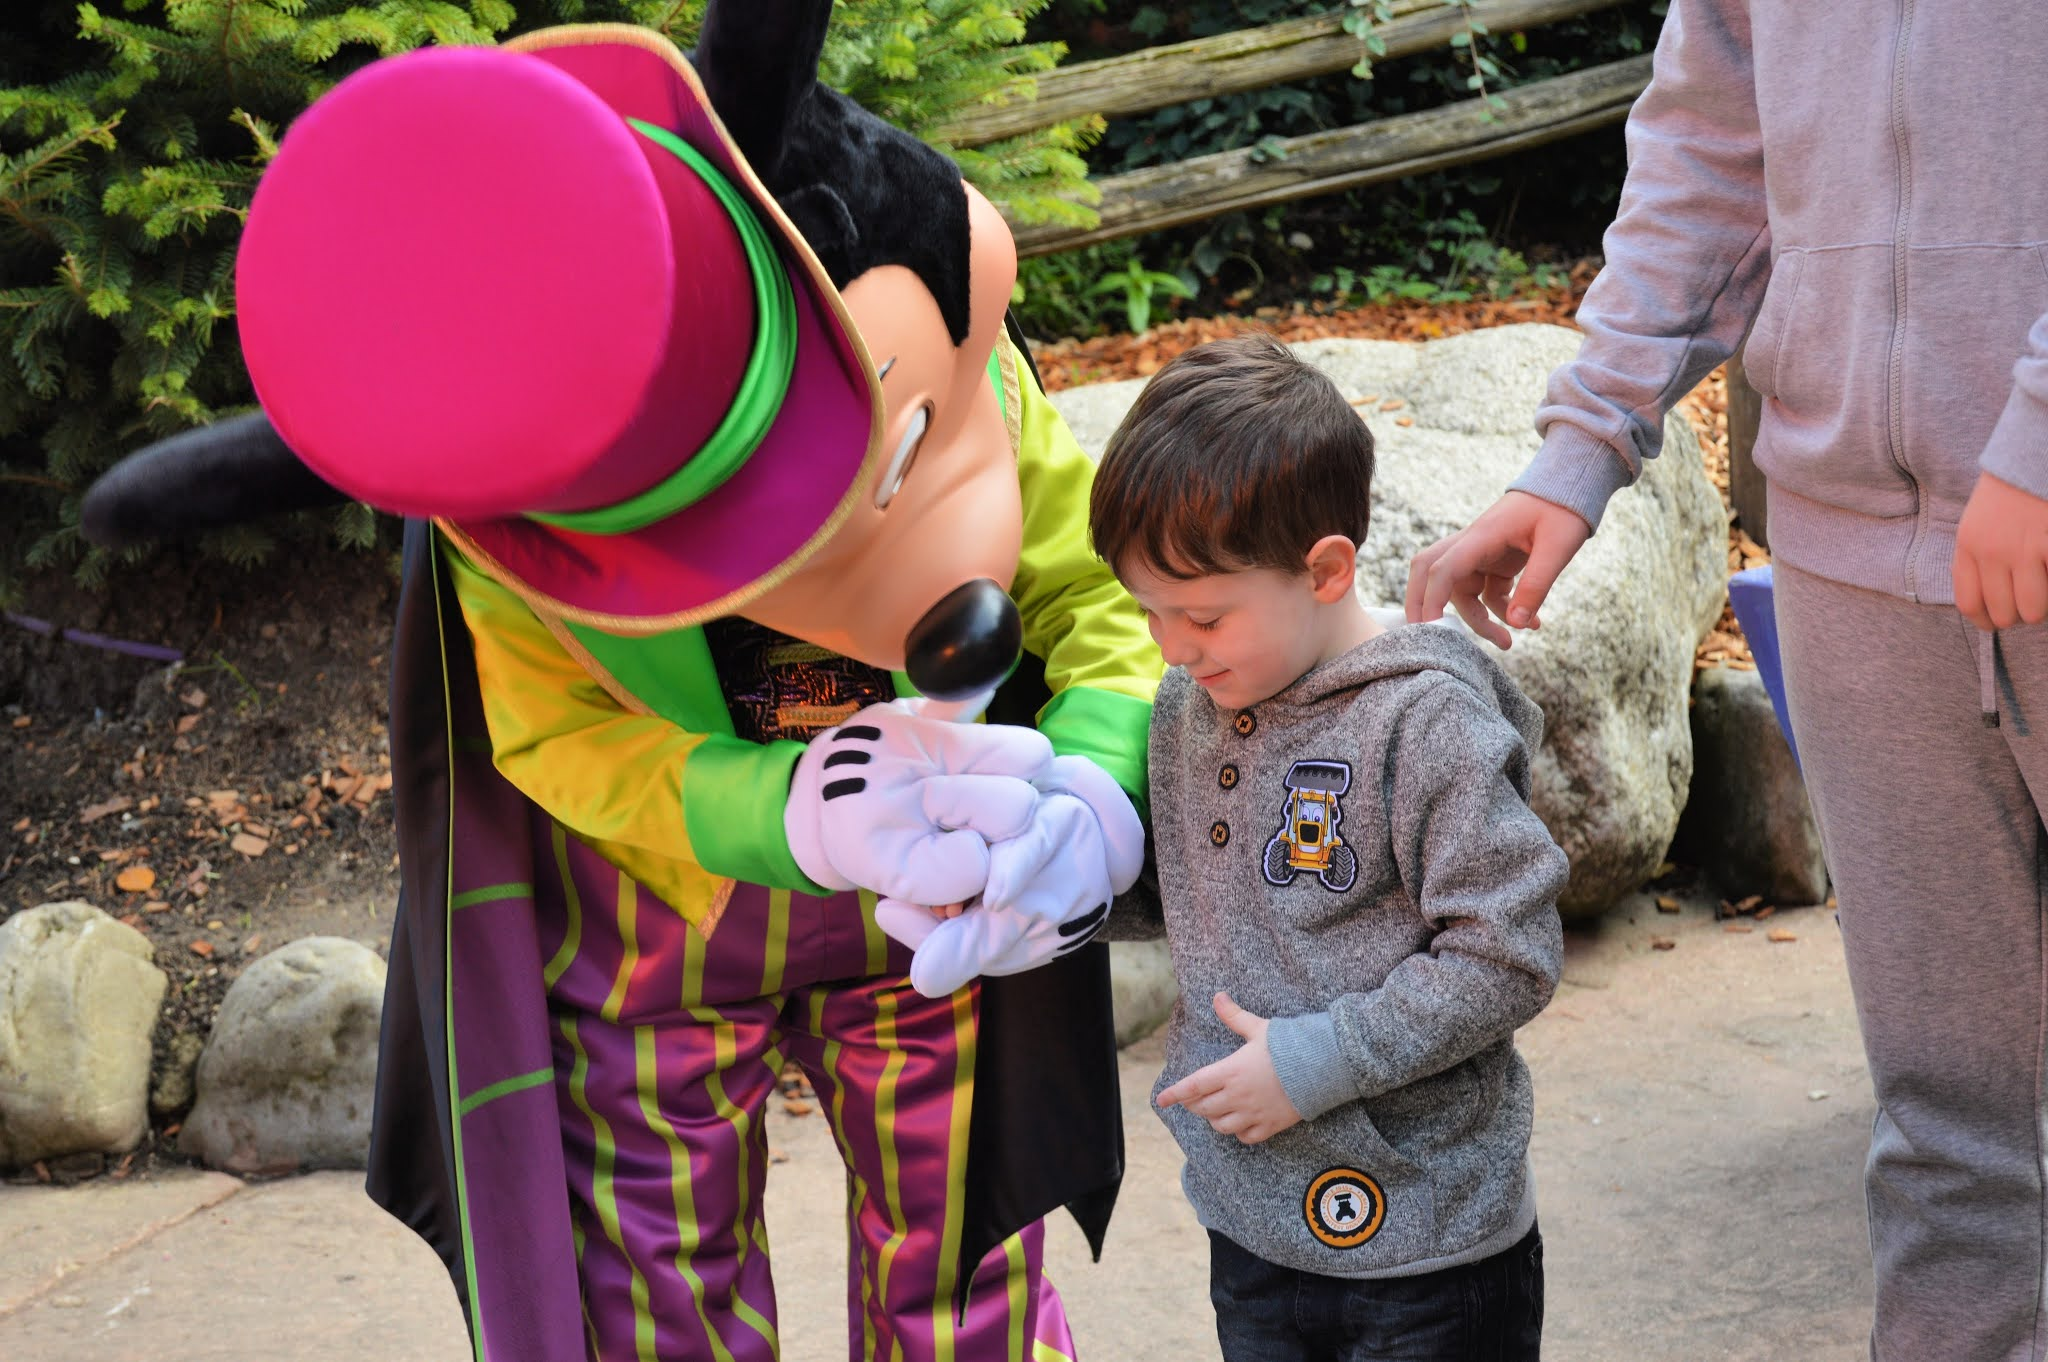 Little boy with Mickey at Disneyland Paris